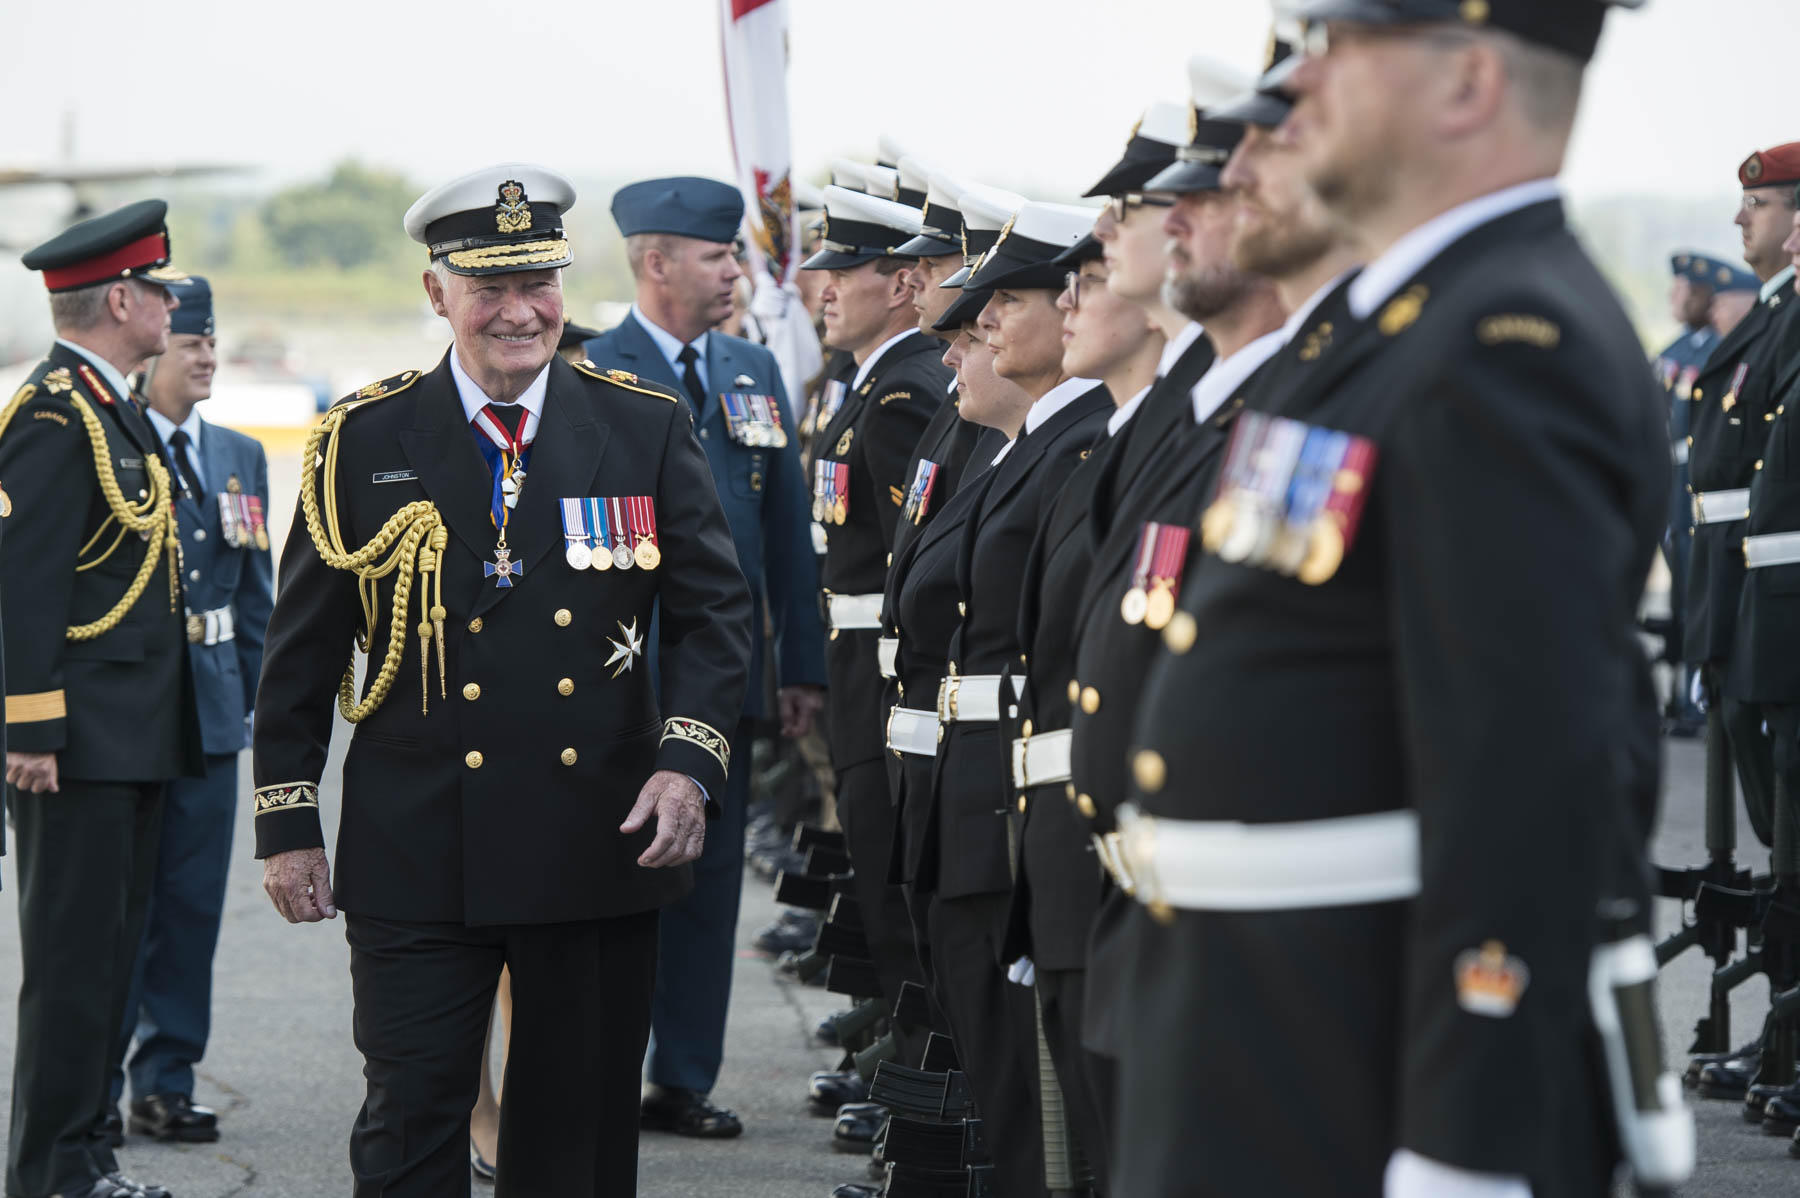 During the special ceremony, His Excellency inspected the Guard of Honour for the last time as Commander-in-Chief of Canada.